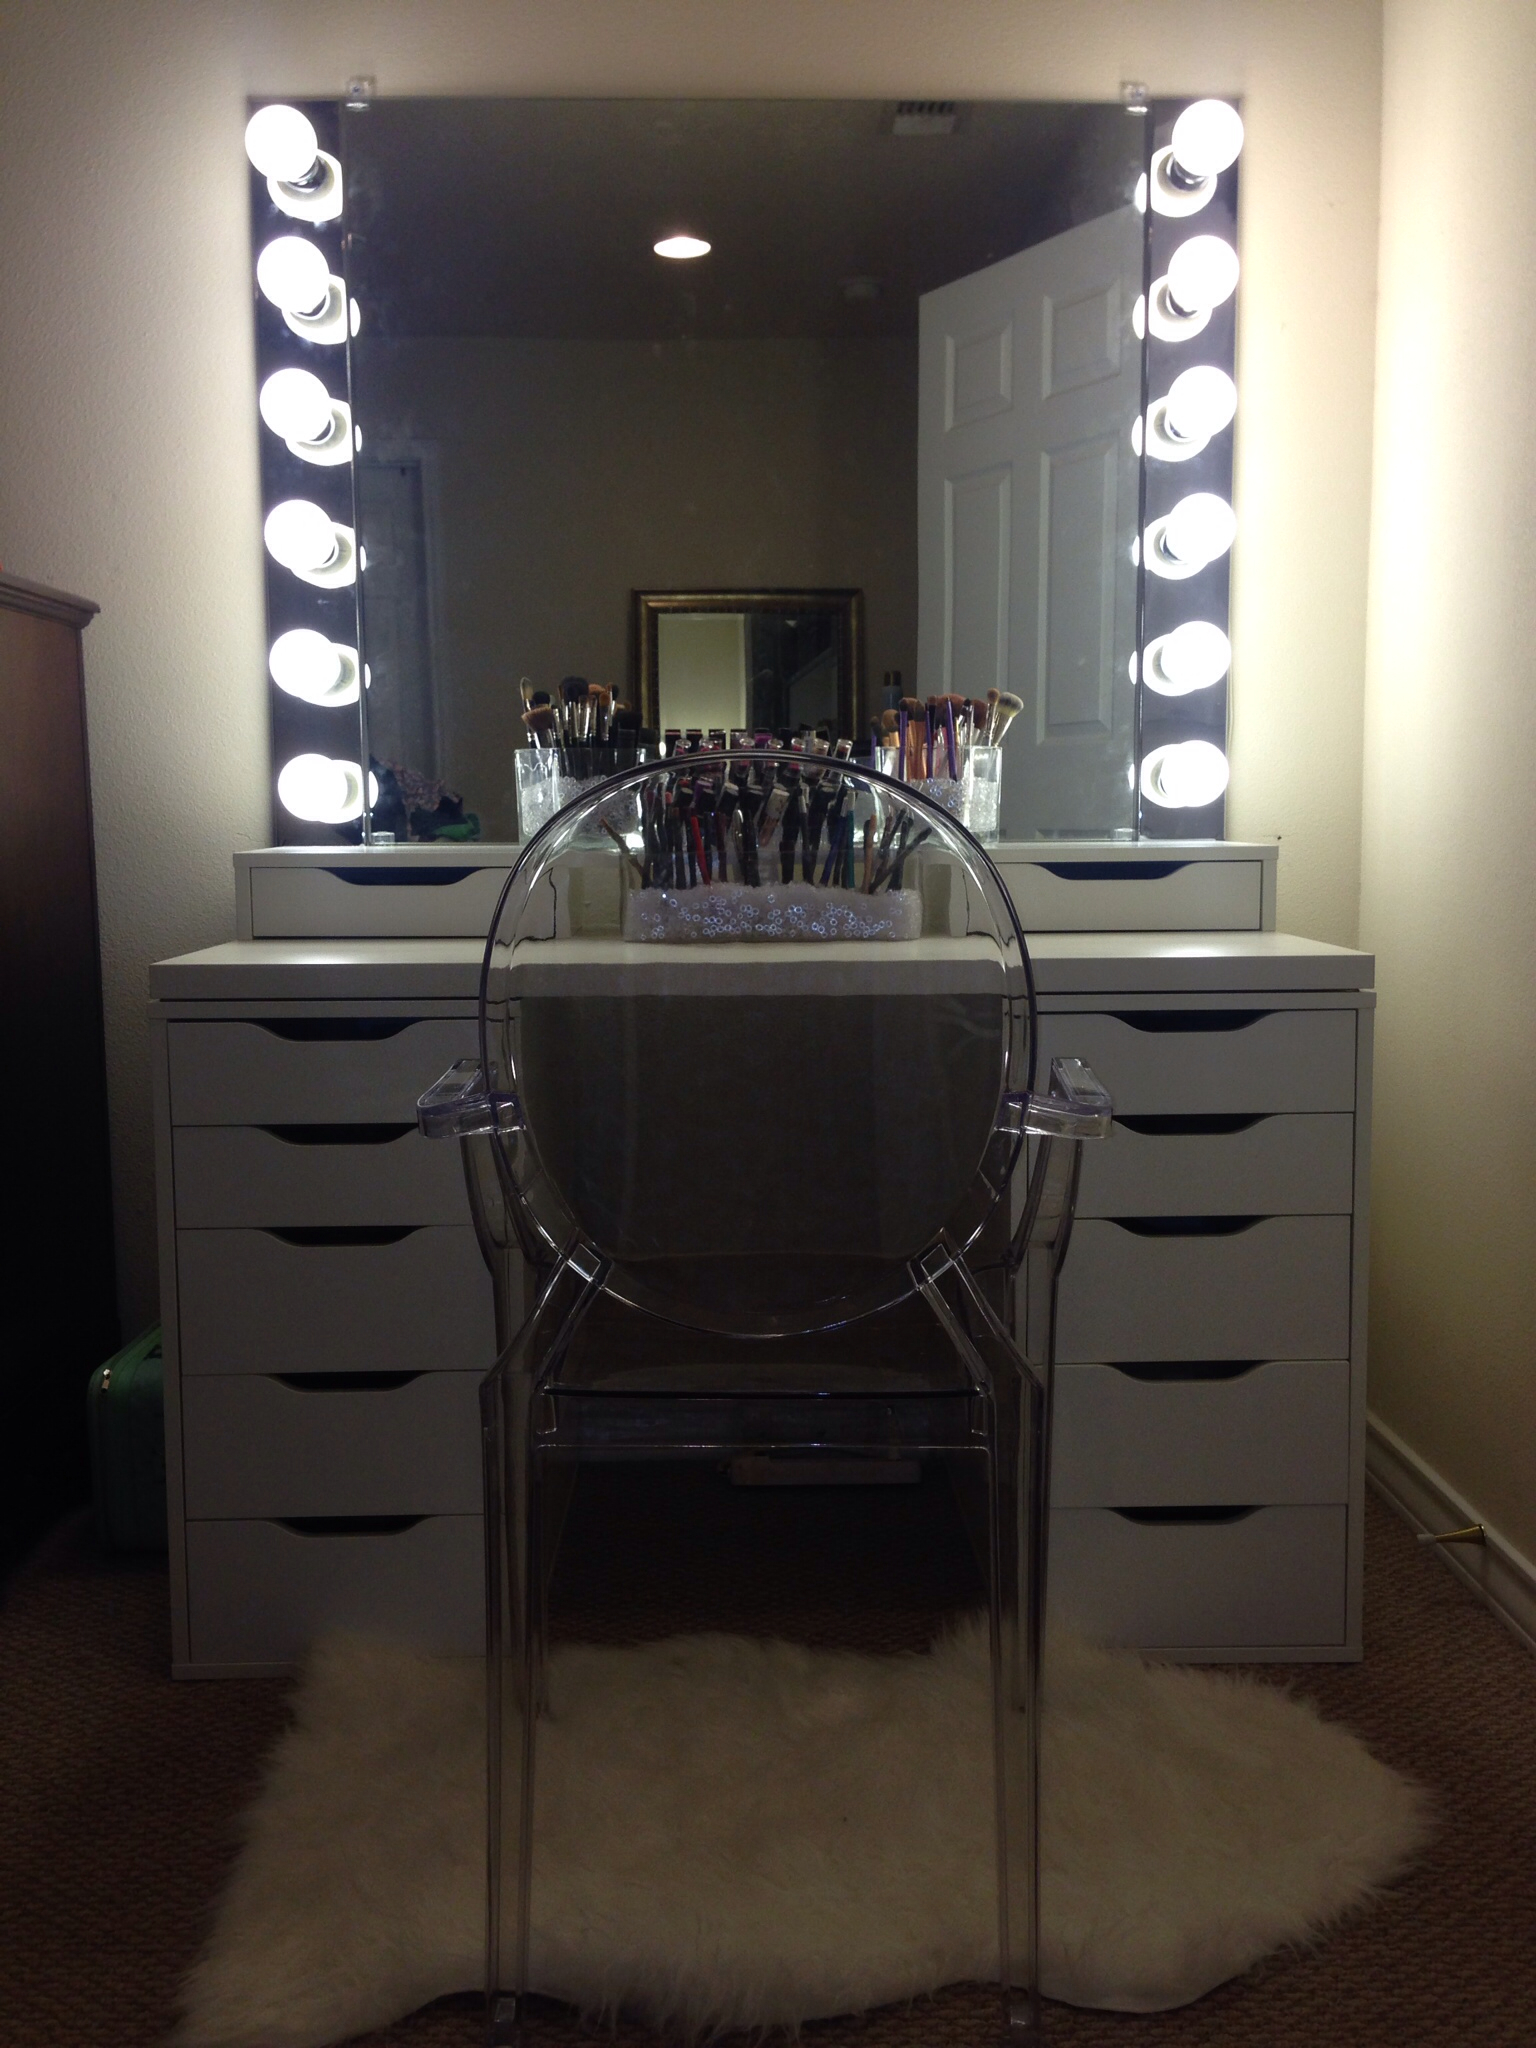 Mirrored Vanity Set | Bedroom Vanity with Lights | Vanity Set with Lighted Mirror